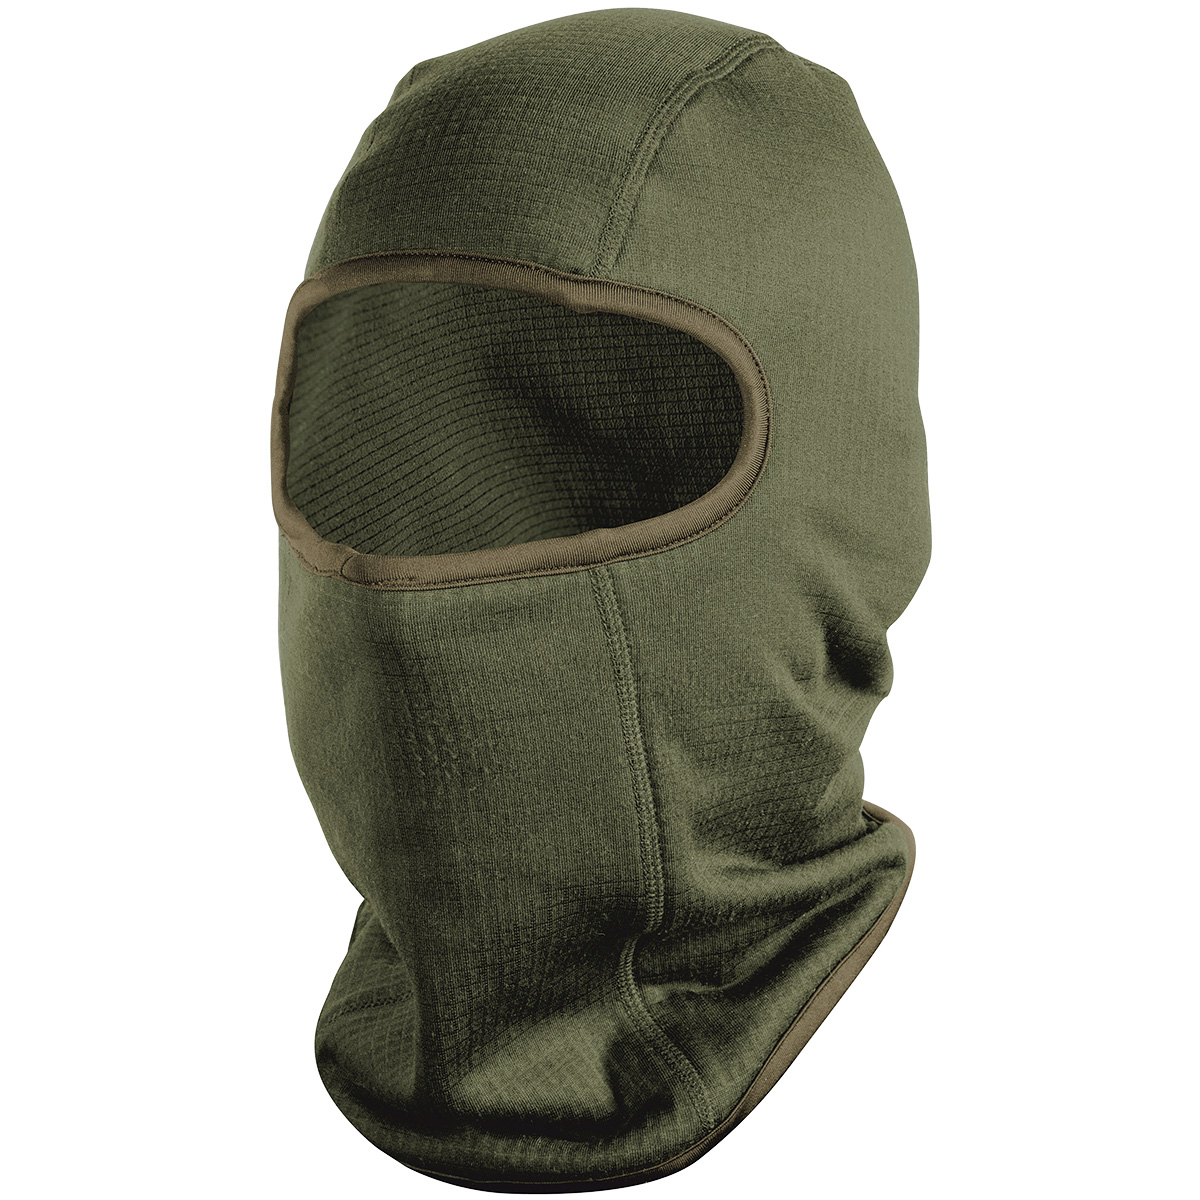 Details about Helikon Warm Tactical Winter Combat 1 Hole Balaclava Extreme Cold  Weather Olive 4cc8521b54b